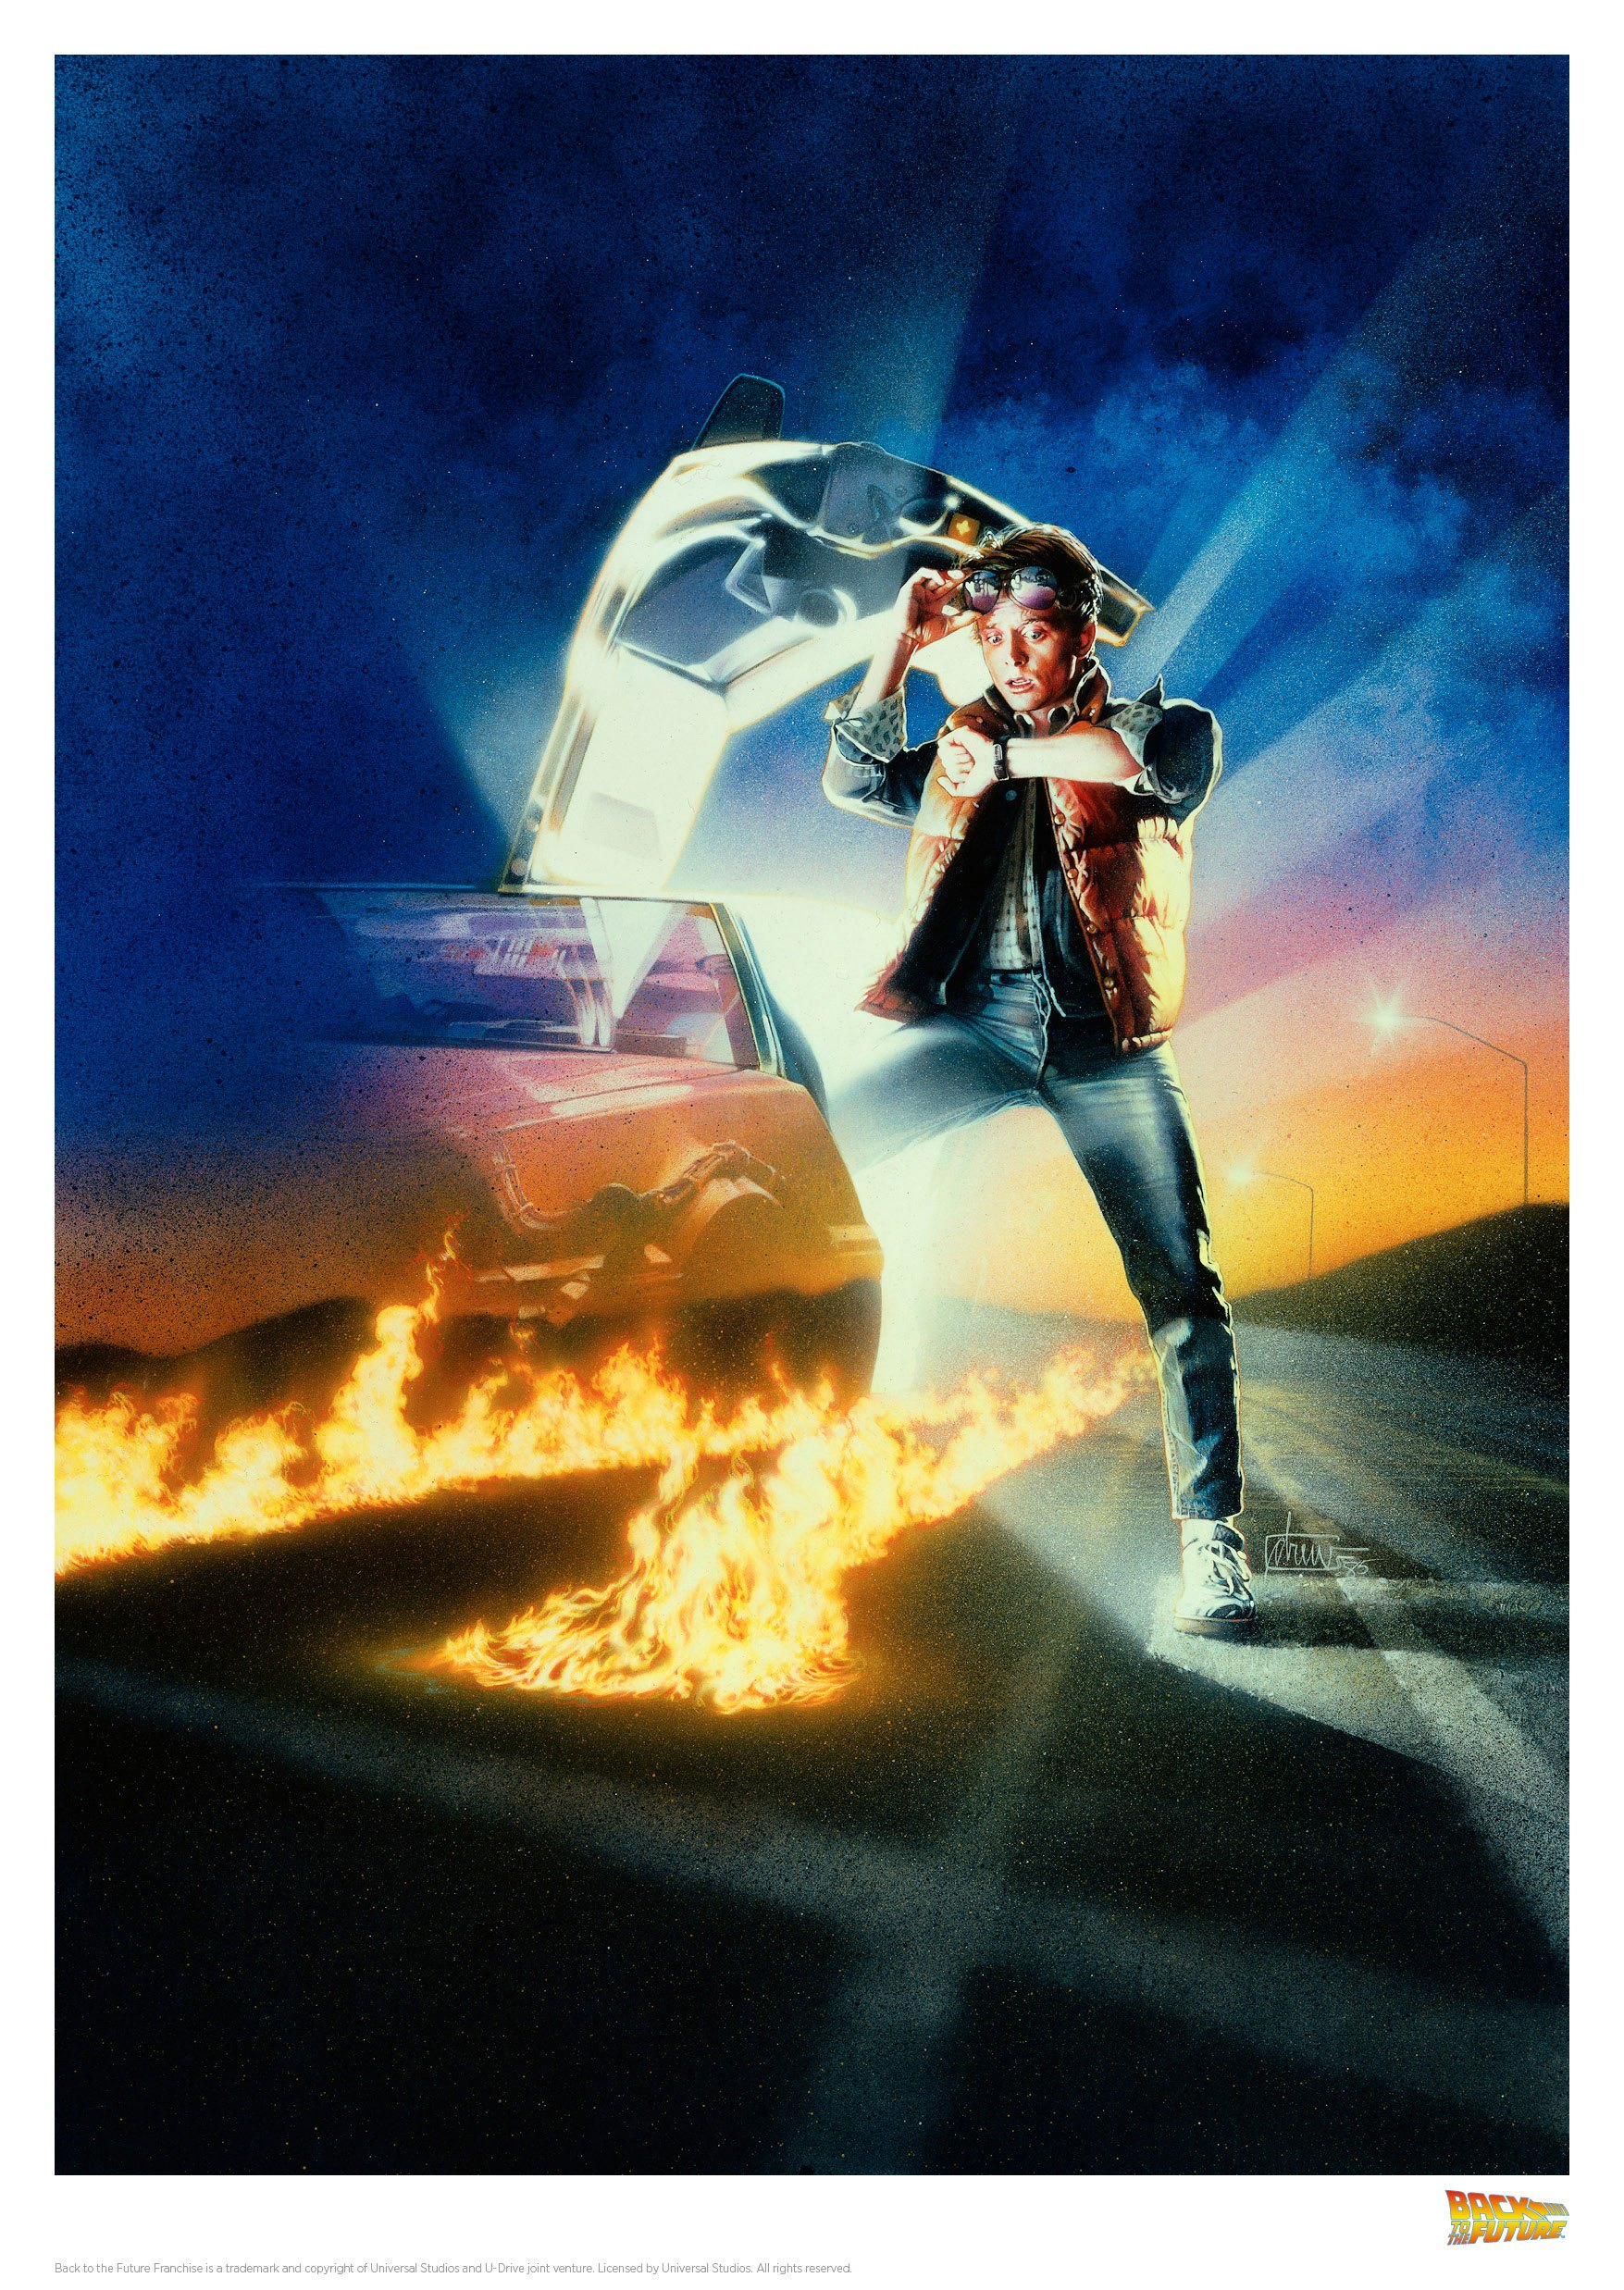 Back to the Future Art Print Cover 42 x 30 cm